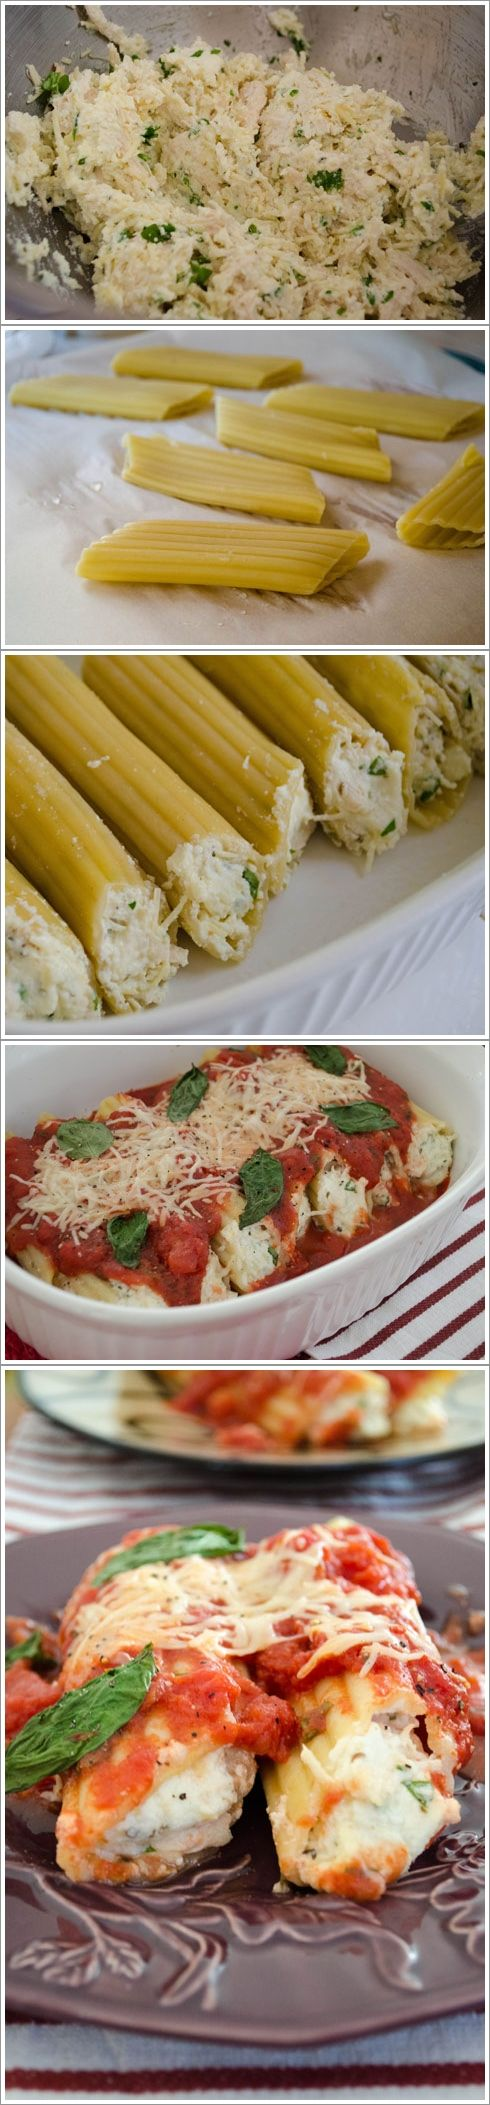 Chicken Parmesan Stuffed Manicotti.